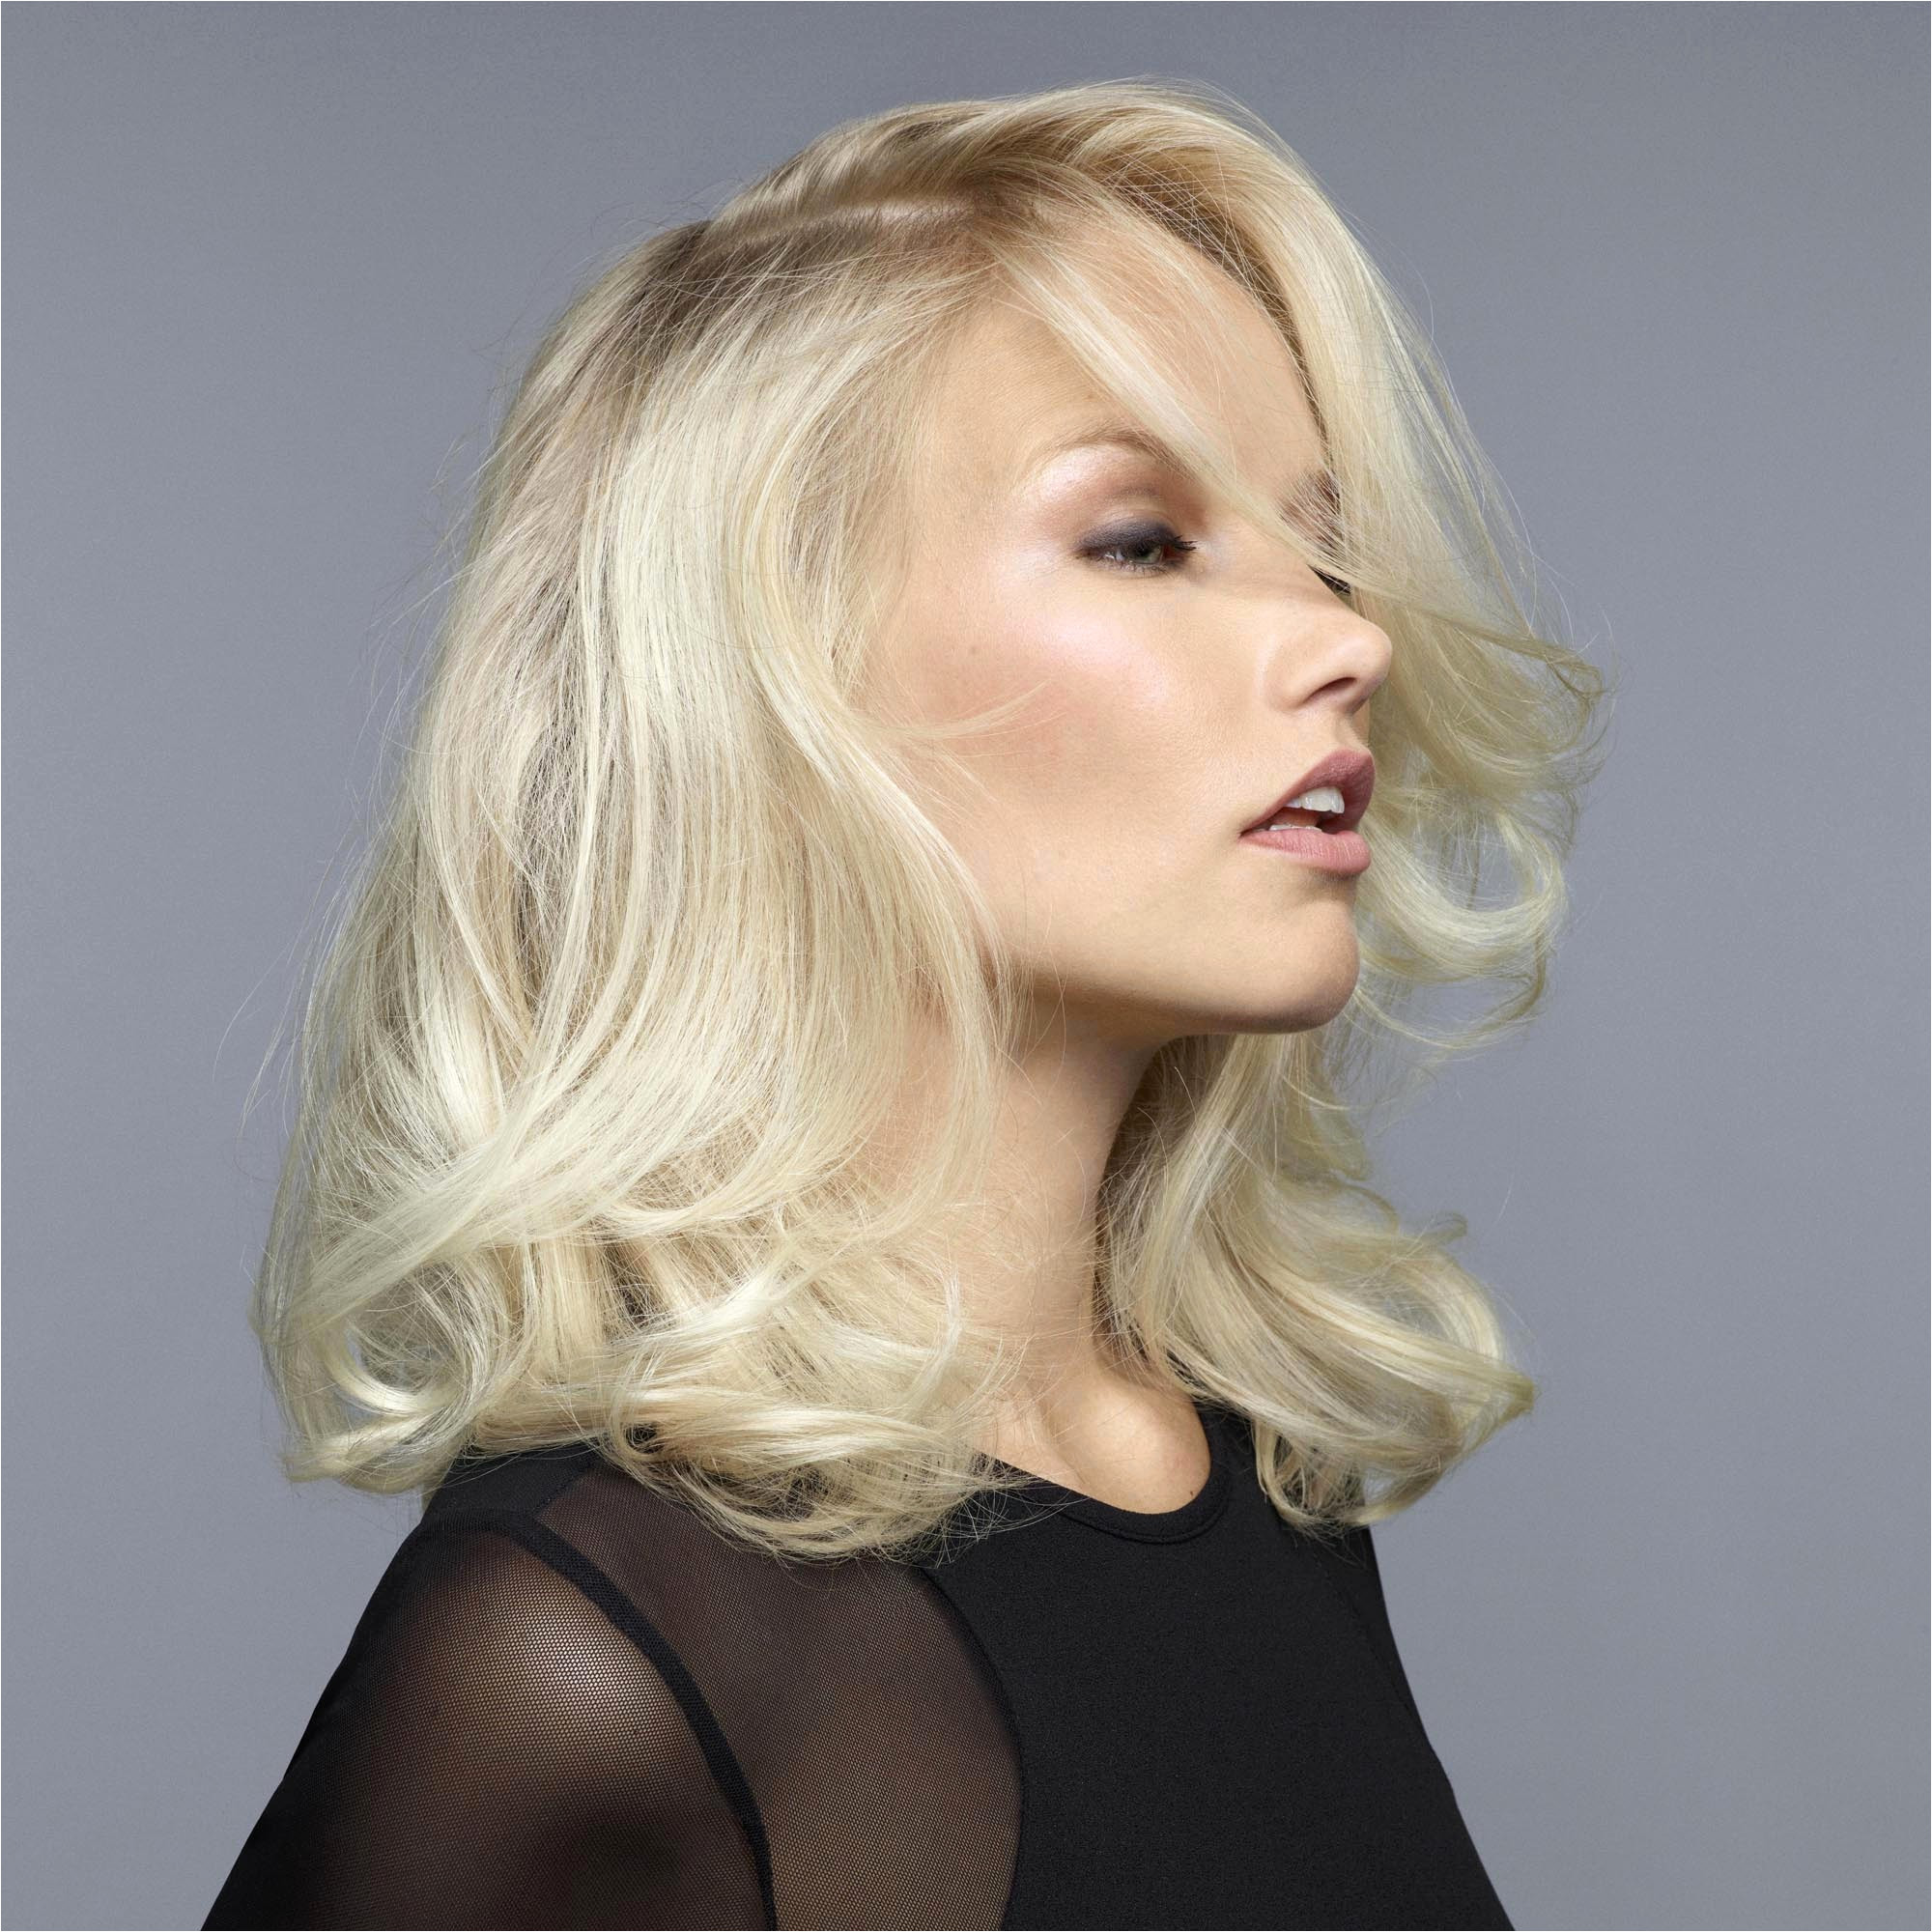 Girl Hairstyles Luxury Extraordinary Hairstyles for Men Luxury Haircuts 0d Particularly Girl Hairstyles Best